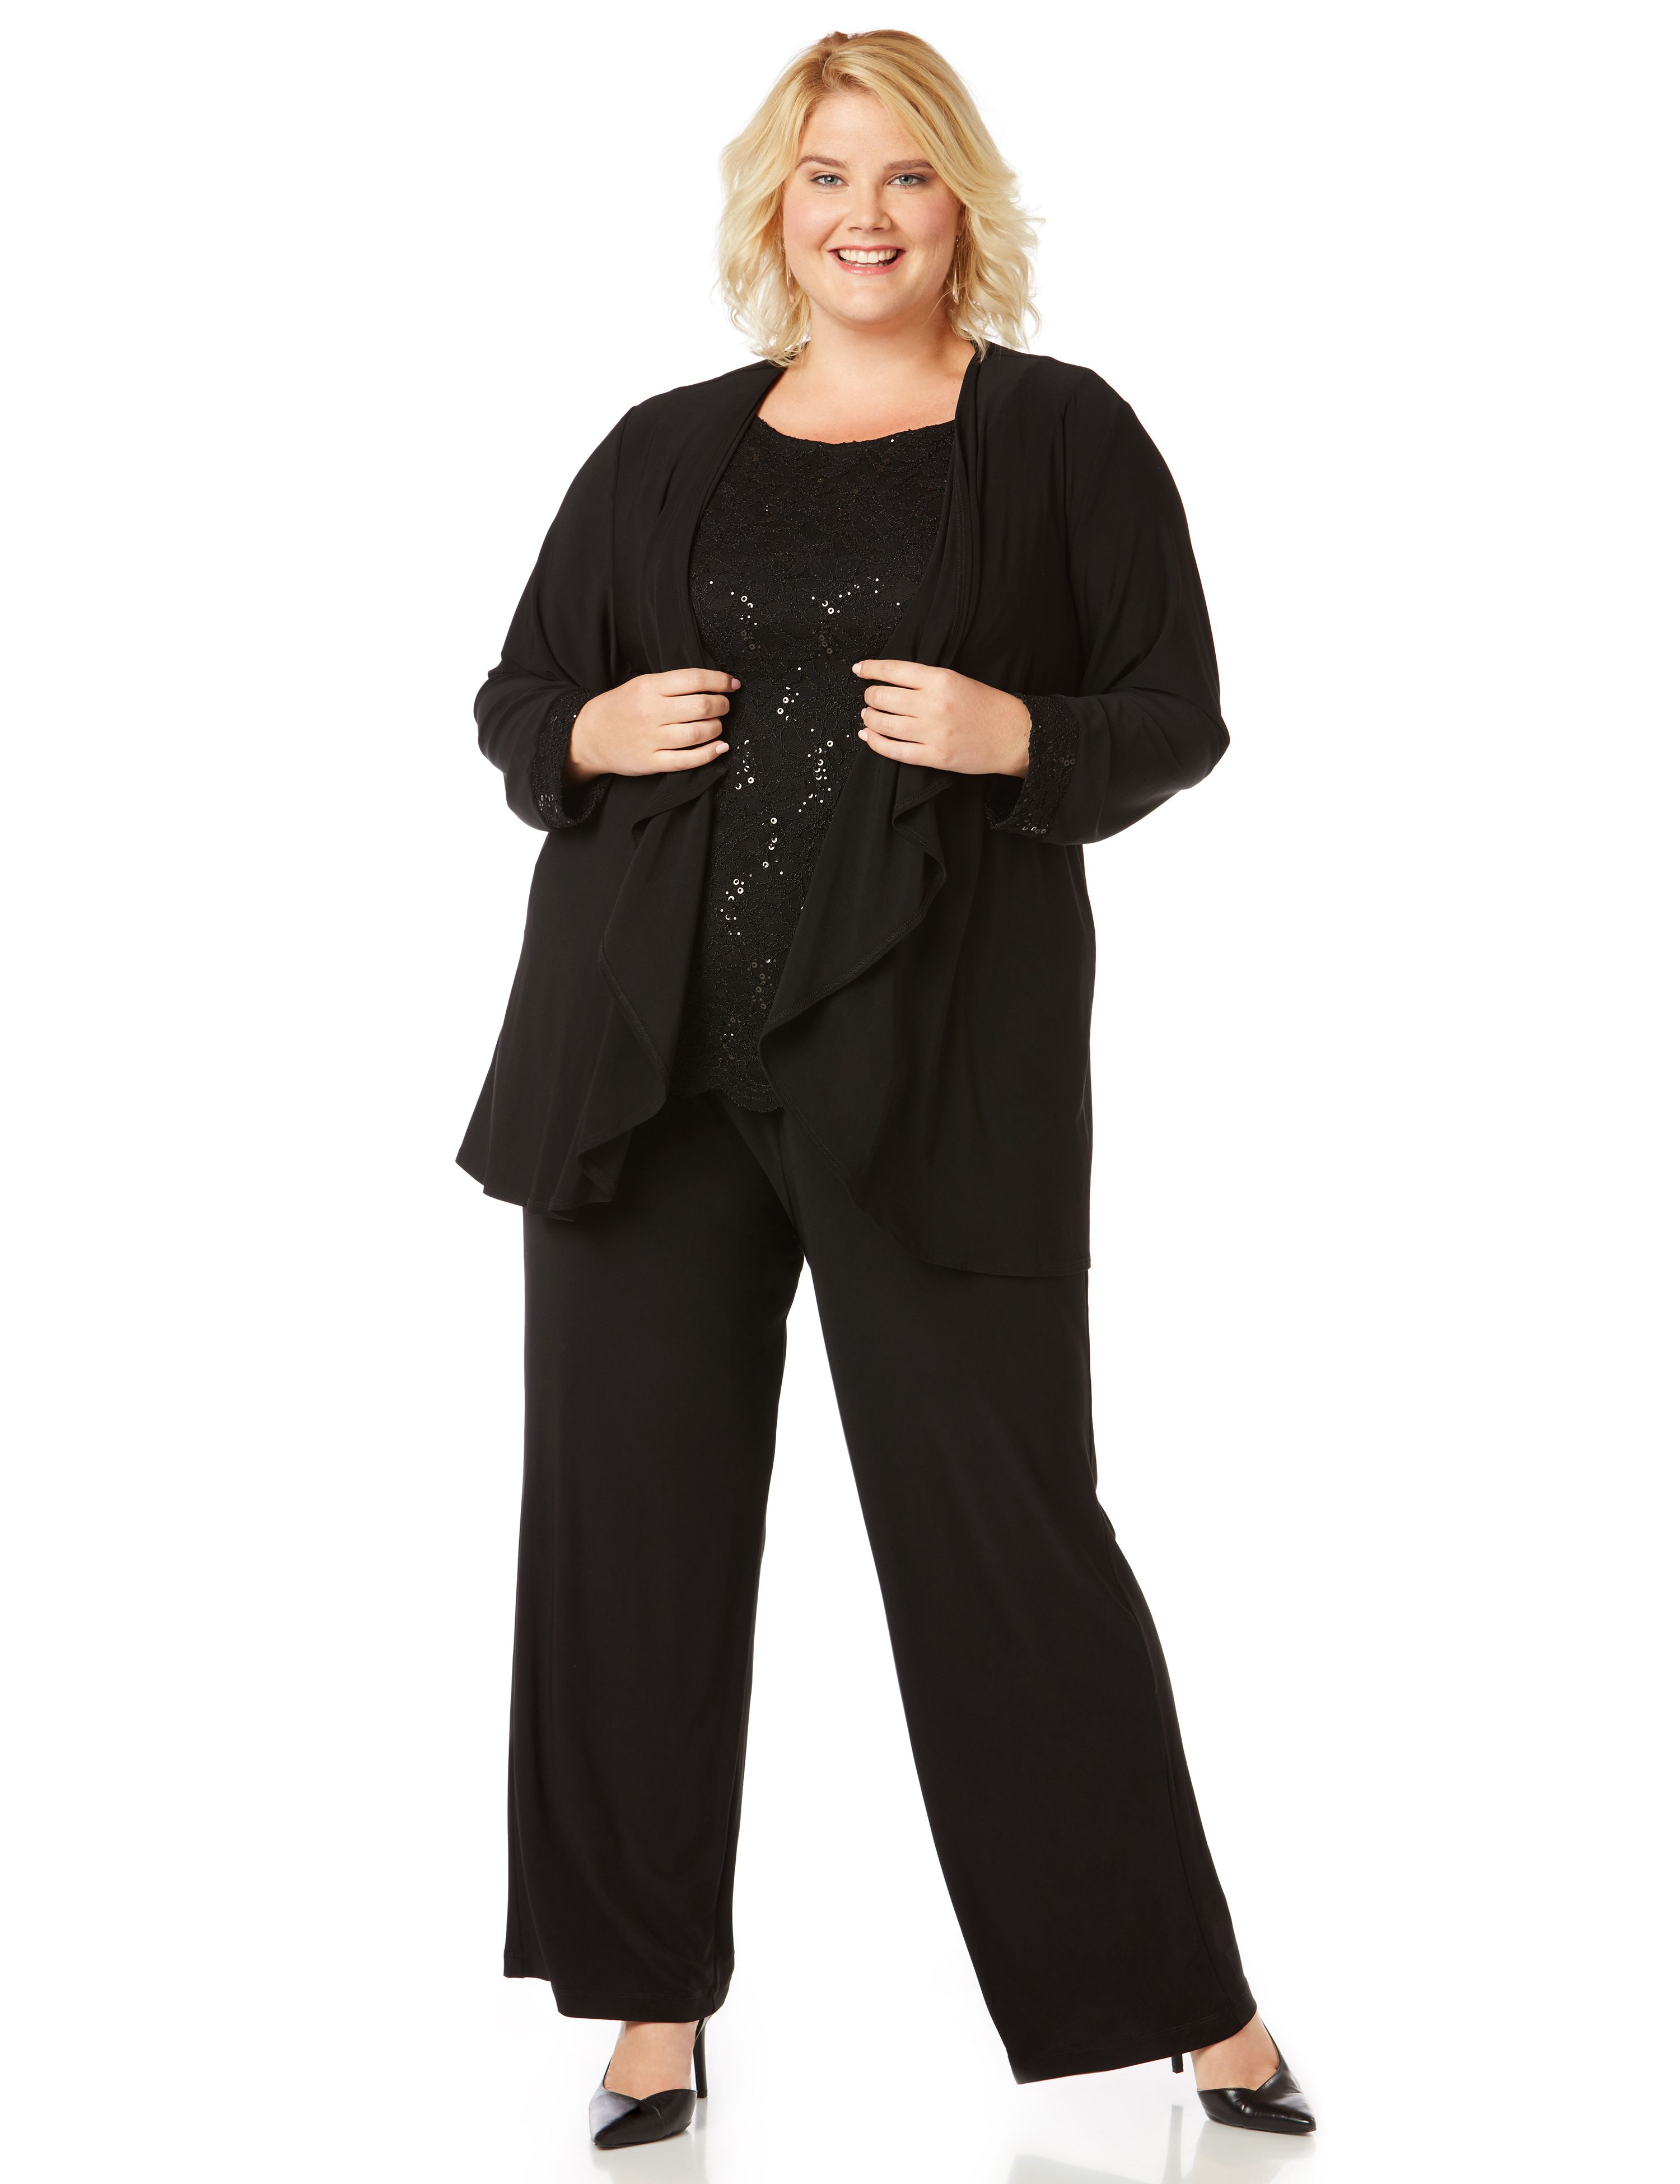 Evening Shine Pantsuit 1086064 TIANNA B PANT SUIT WITH LAC MP-300081736